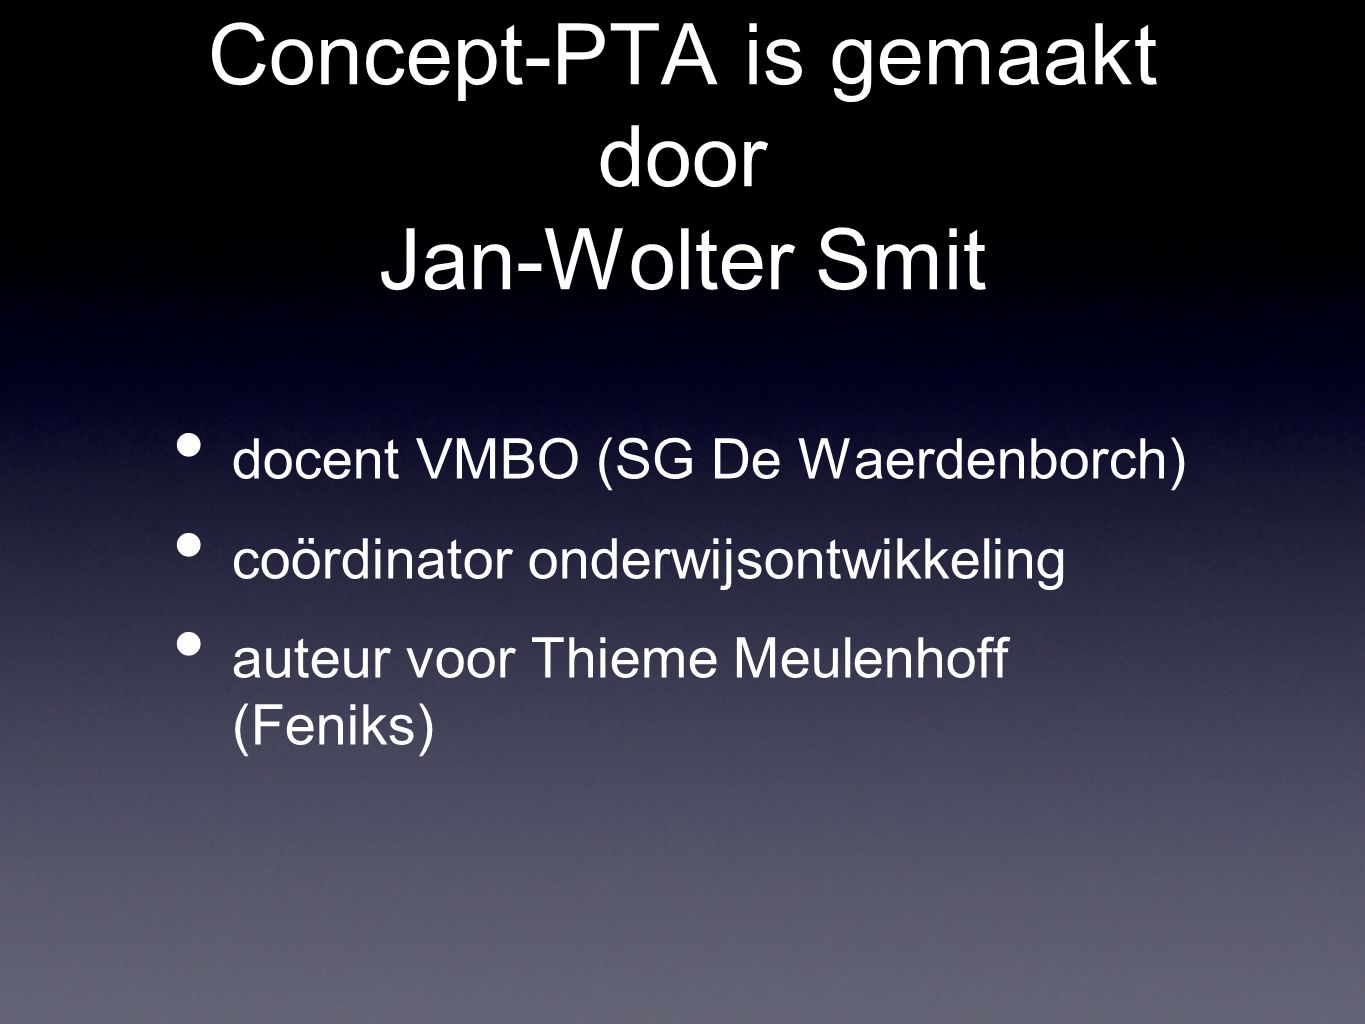 Concept-PTA is gemaakt door Jan-Wolter Smit